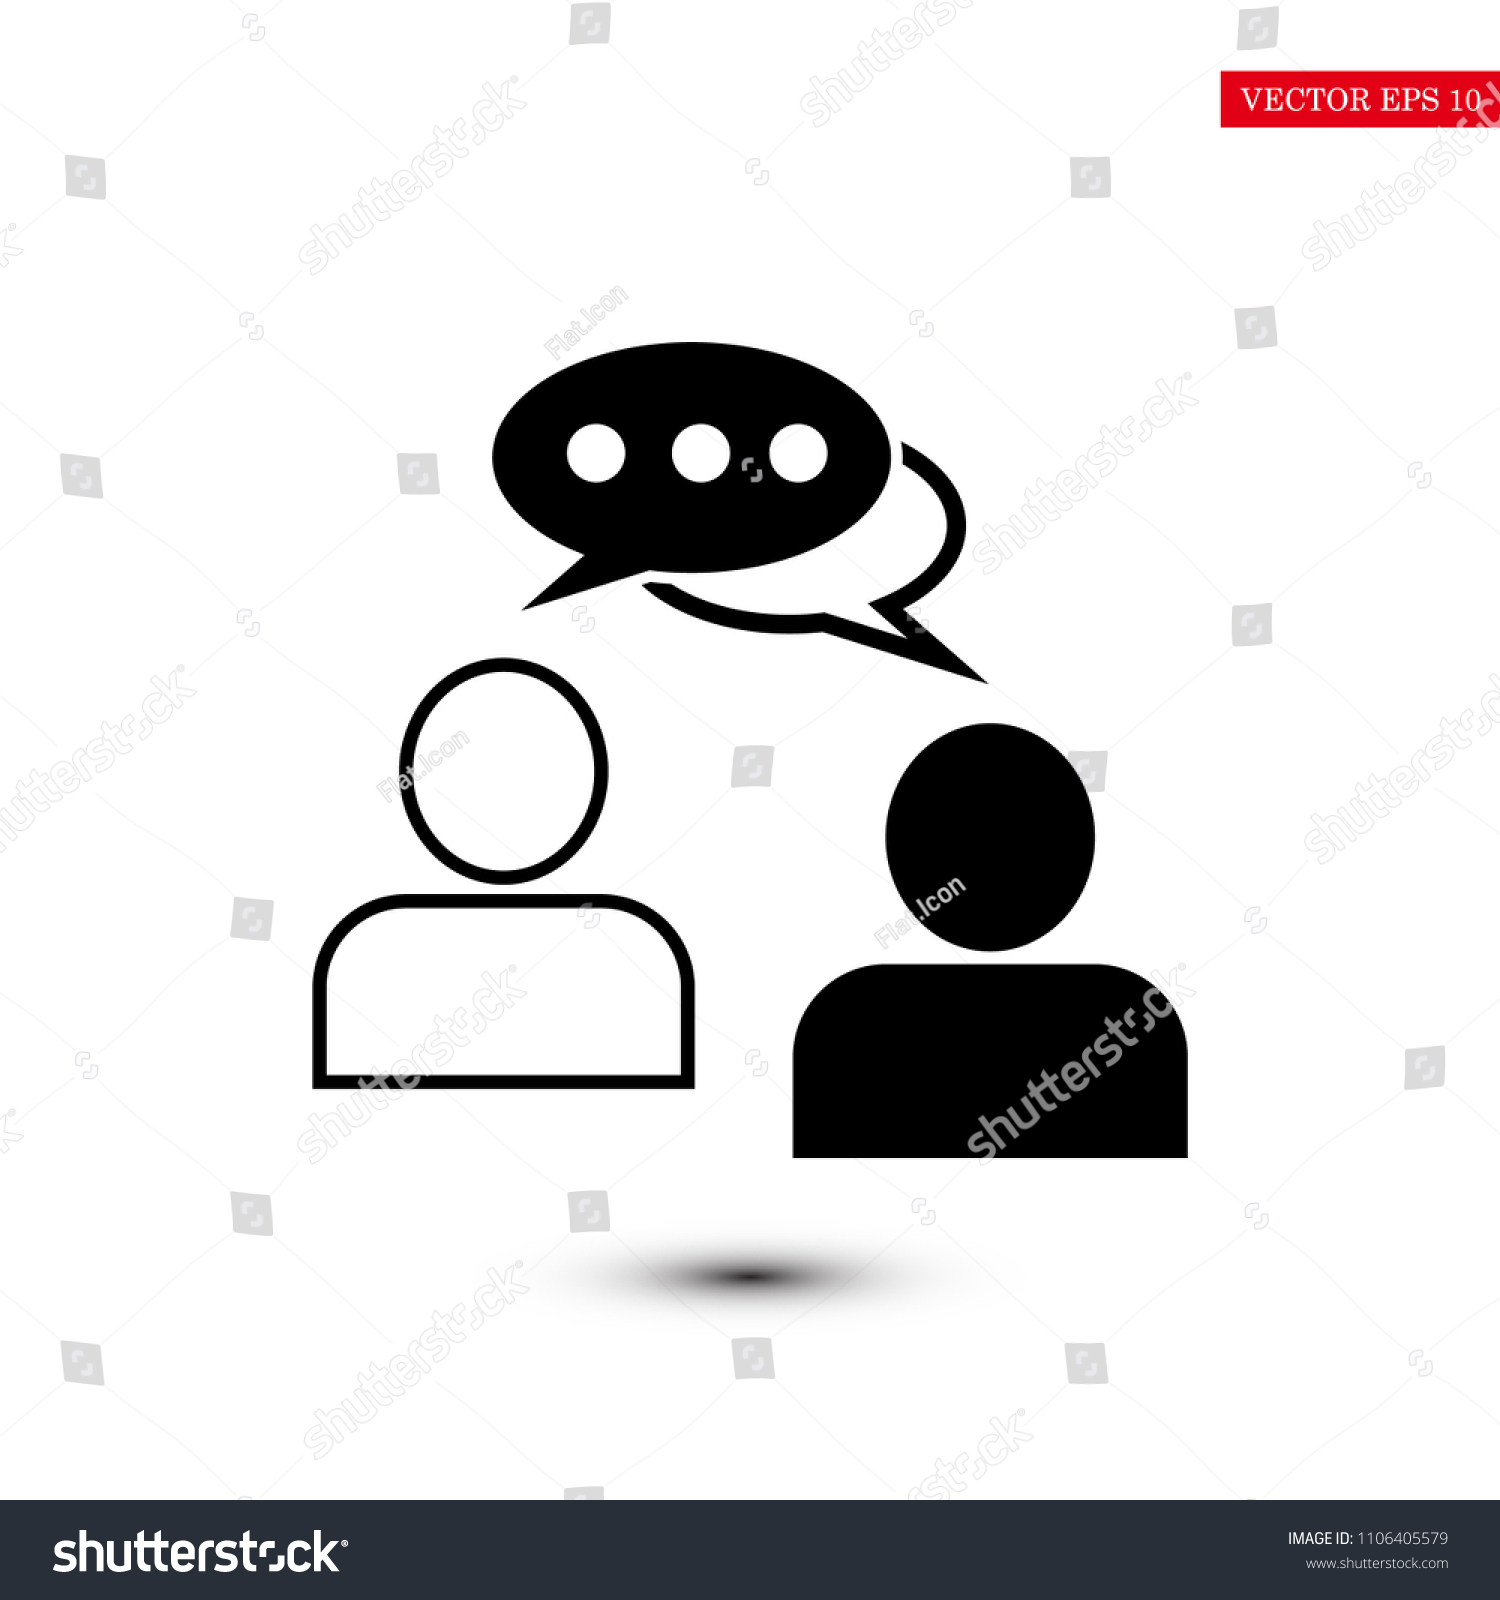 Gratis Juridisch Advies Chat Speaking People Chat Icon Stock Vector Stockvector Rechtenvrij